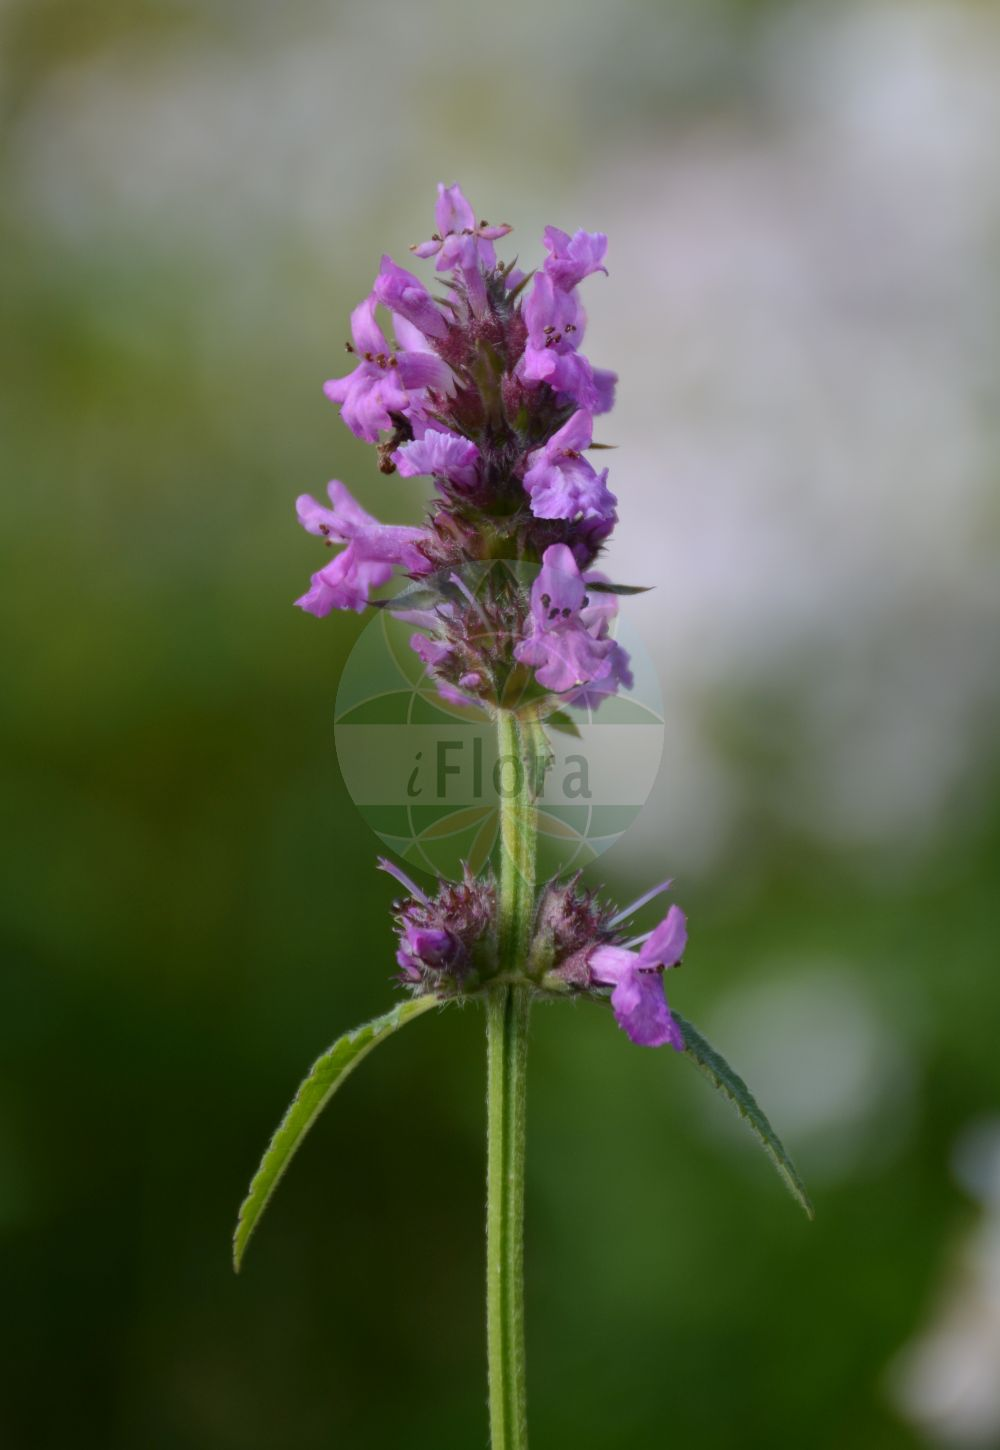 Foto von Stachys officinalis (Heil-Ziest - Betony). Das Foto wurde in Dresden, Sachsen, Deutschland aufgenommen. ---- Photo of Stachys officinalis (Heil-Ziest - Betony).The picture was taken in Dresden, Sachsen, Germany.(Stachys officinalis,Heil-Ziest,Betony,Stachys betonica,,Echte Betonie,Echtes Zehrkraut,Common Hedgenettle,Wood Marsh Woundwort,Stachys,Ziest,Hedgenettle,Lamiaceae,Lippenbluetengewaechse;Lippenbluetler,Nettle family)